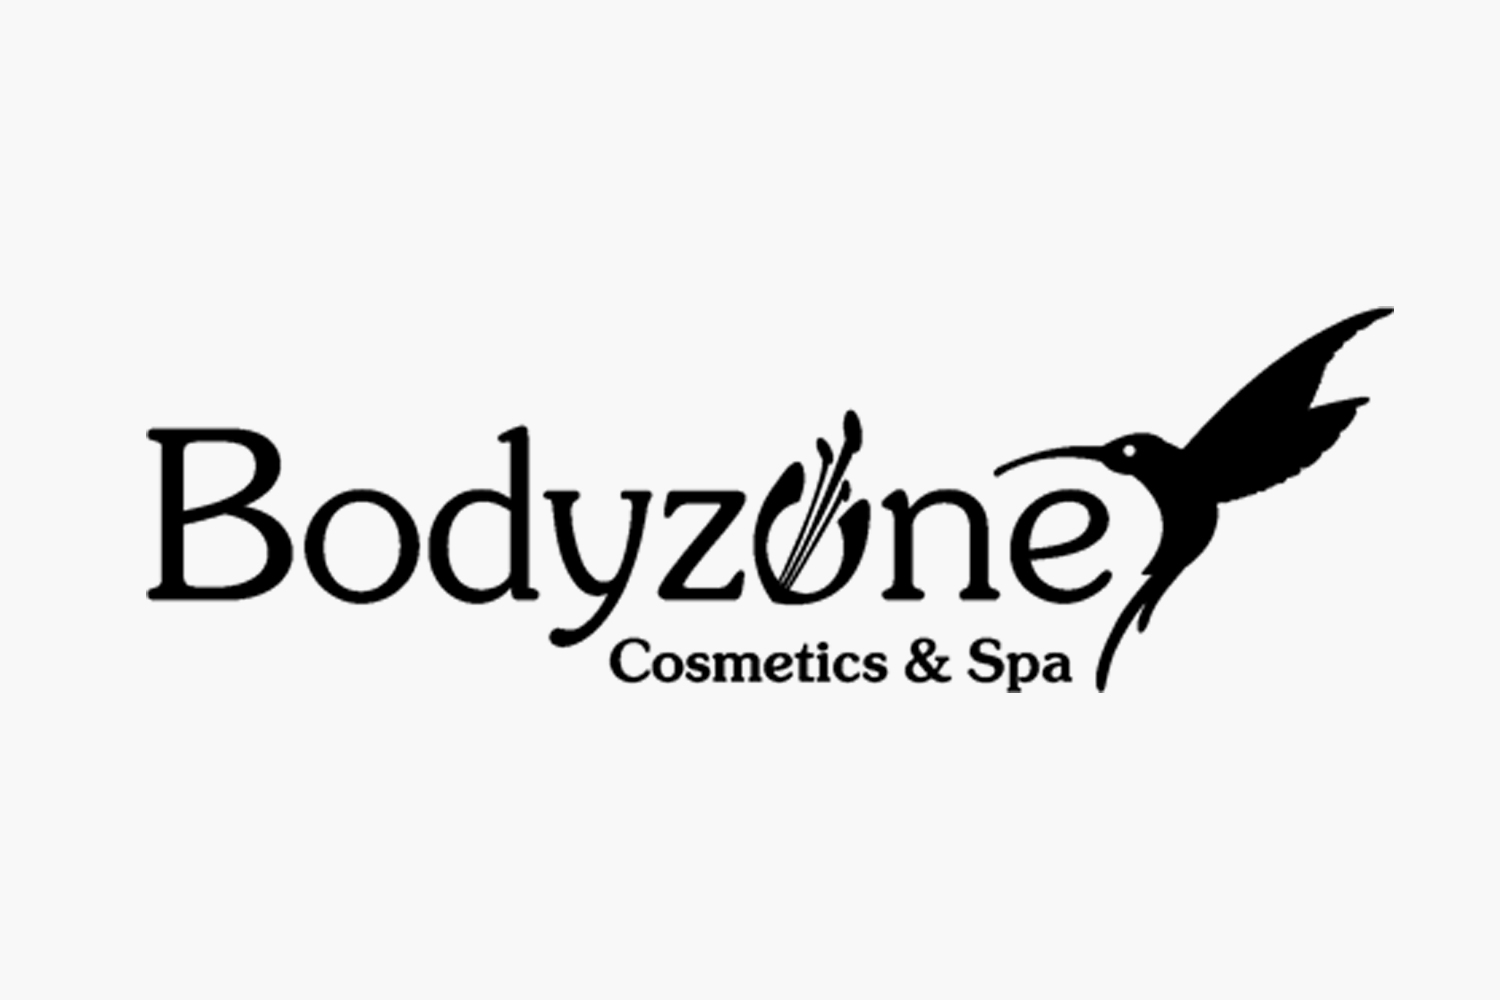 Bodyzone-Cosmetics-Spa.jpg